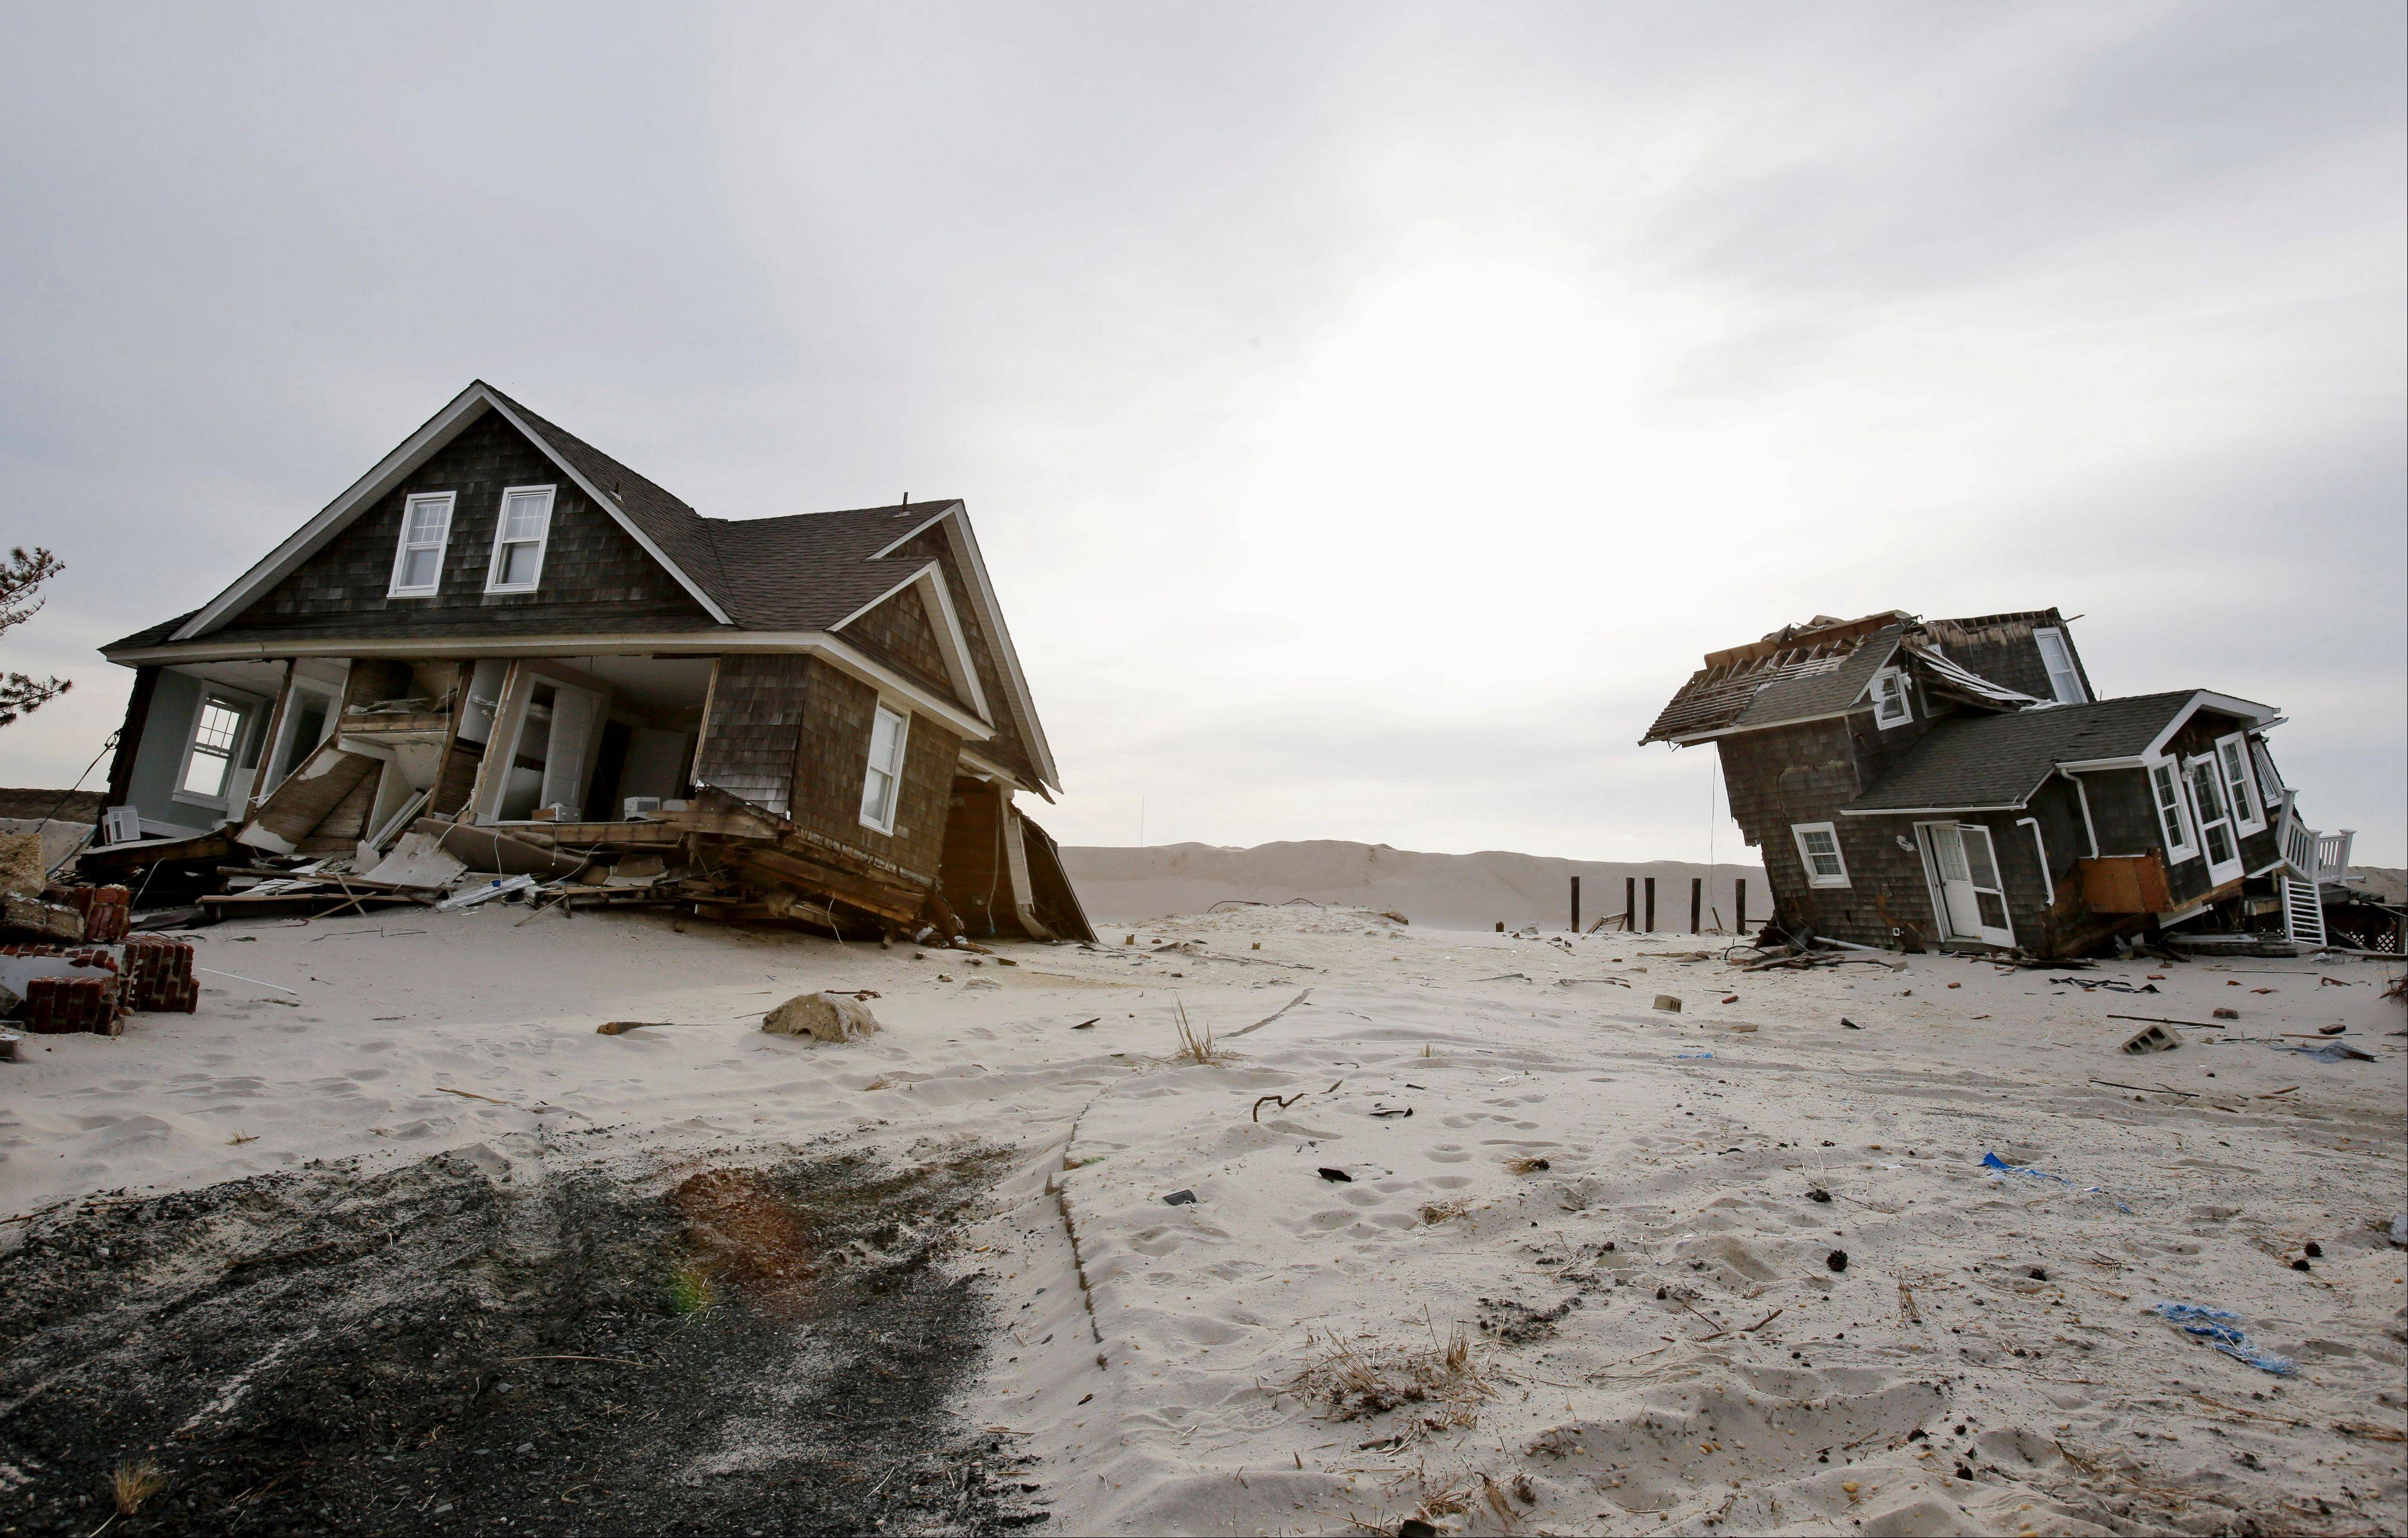 This Feb. 22, 2013, file photo shows Two heavily damaged homes on the beach in Mantoloking, N.J., from Superstorm Sandy. Man-made global warming may decrease the likelihood of the already unusual steering currents that pushed Superstorm Sandy due west into New Jersey in a freak 1-in-700 year path, researchers report.